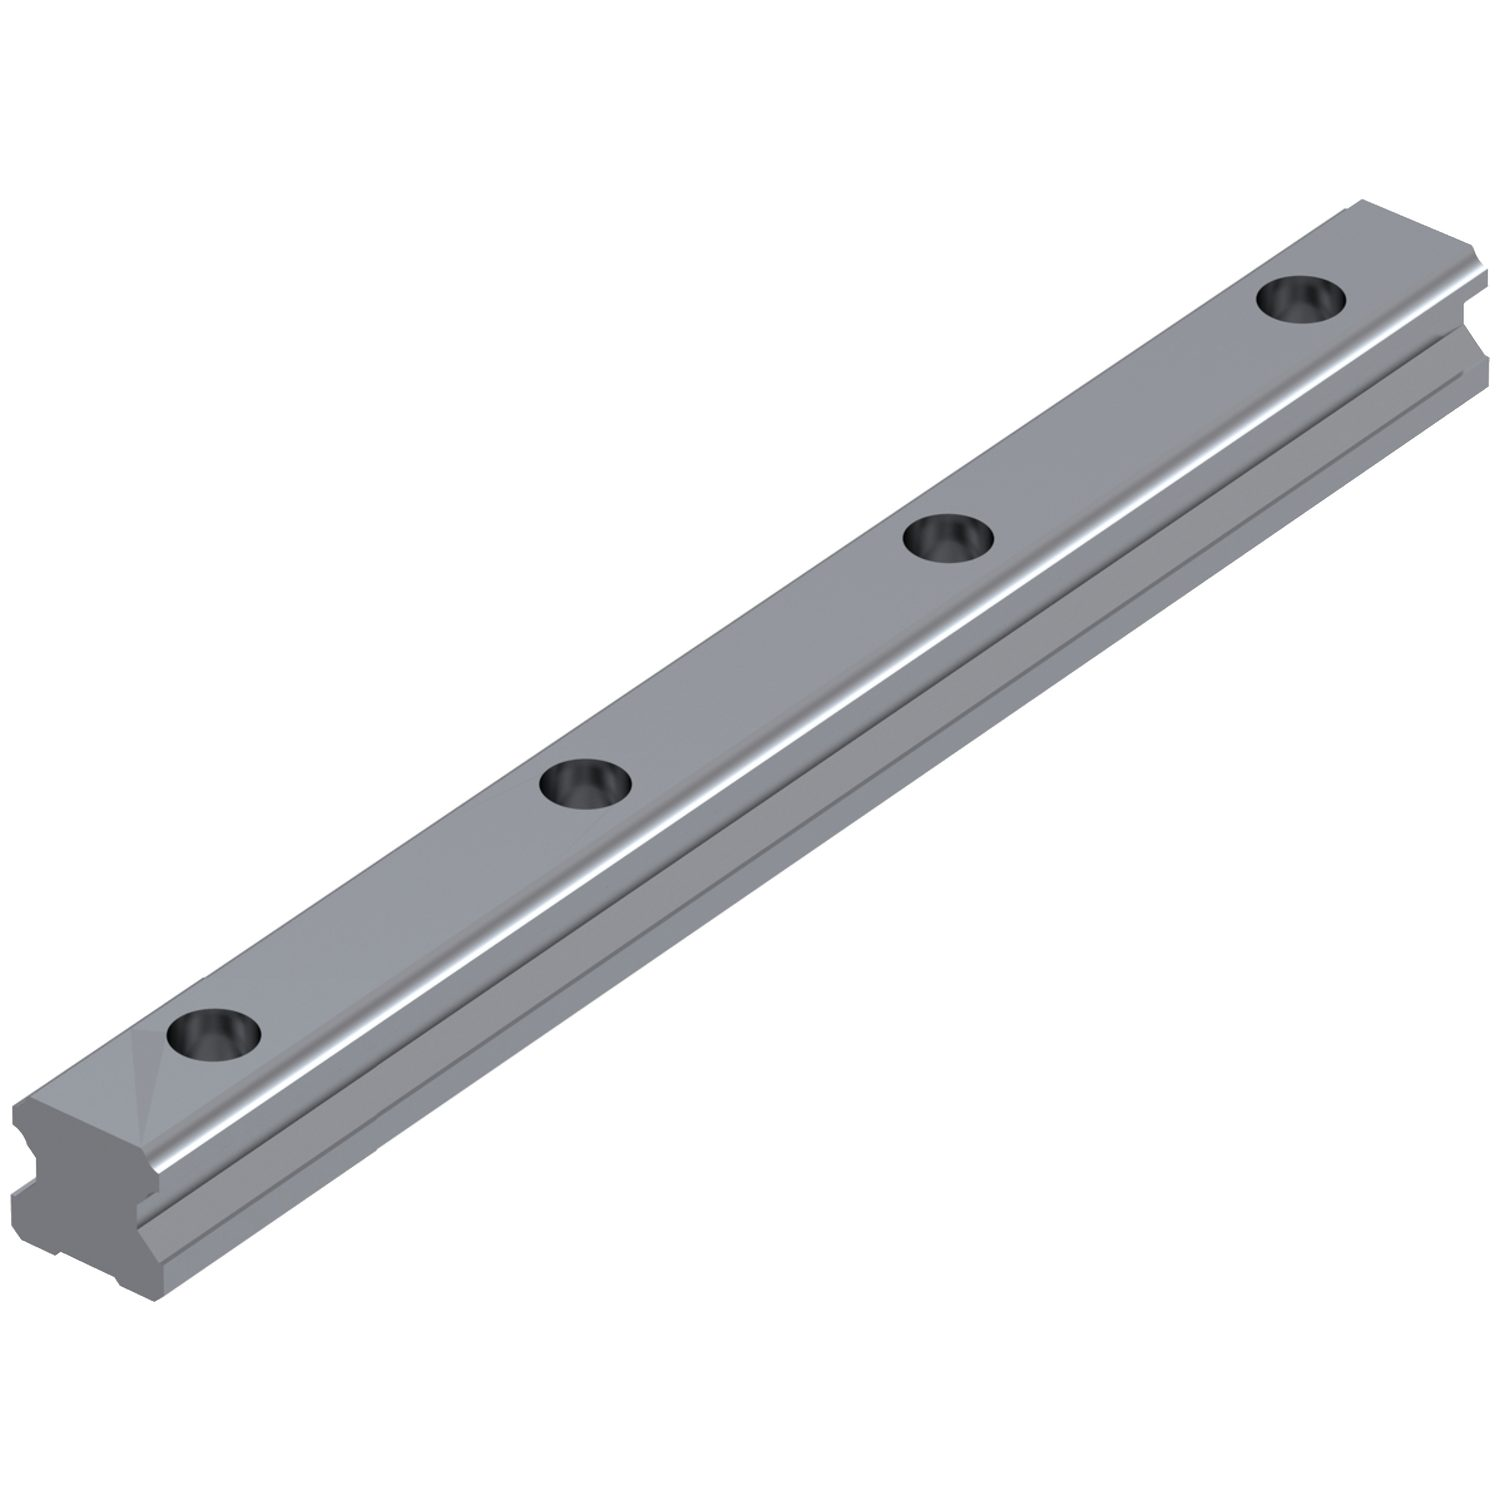 L1016.15 - 15mm Linear Guide Rail